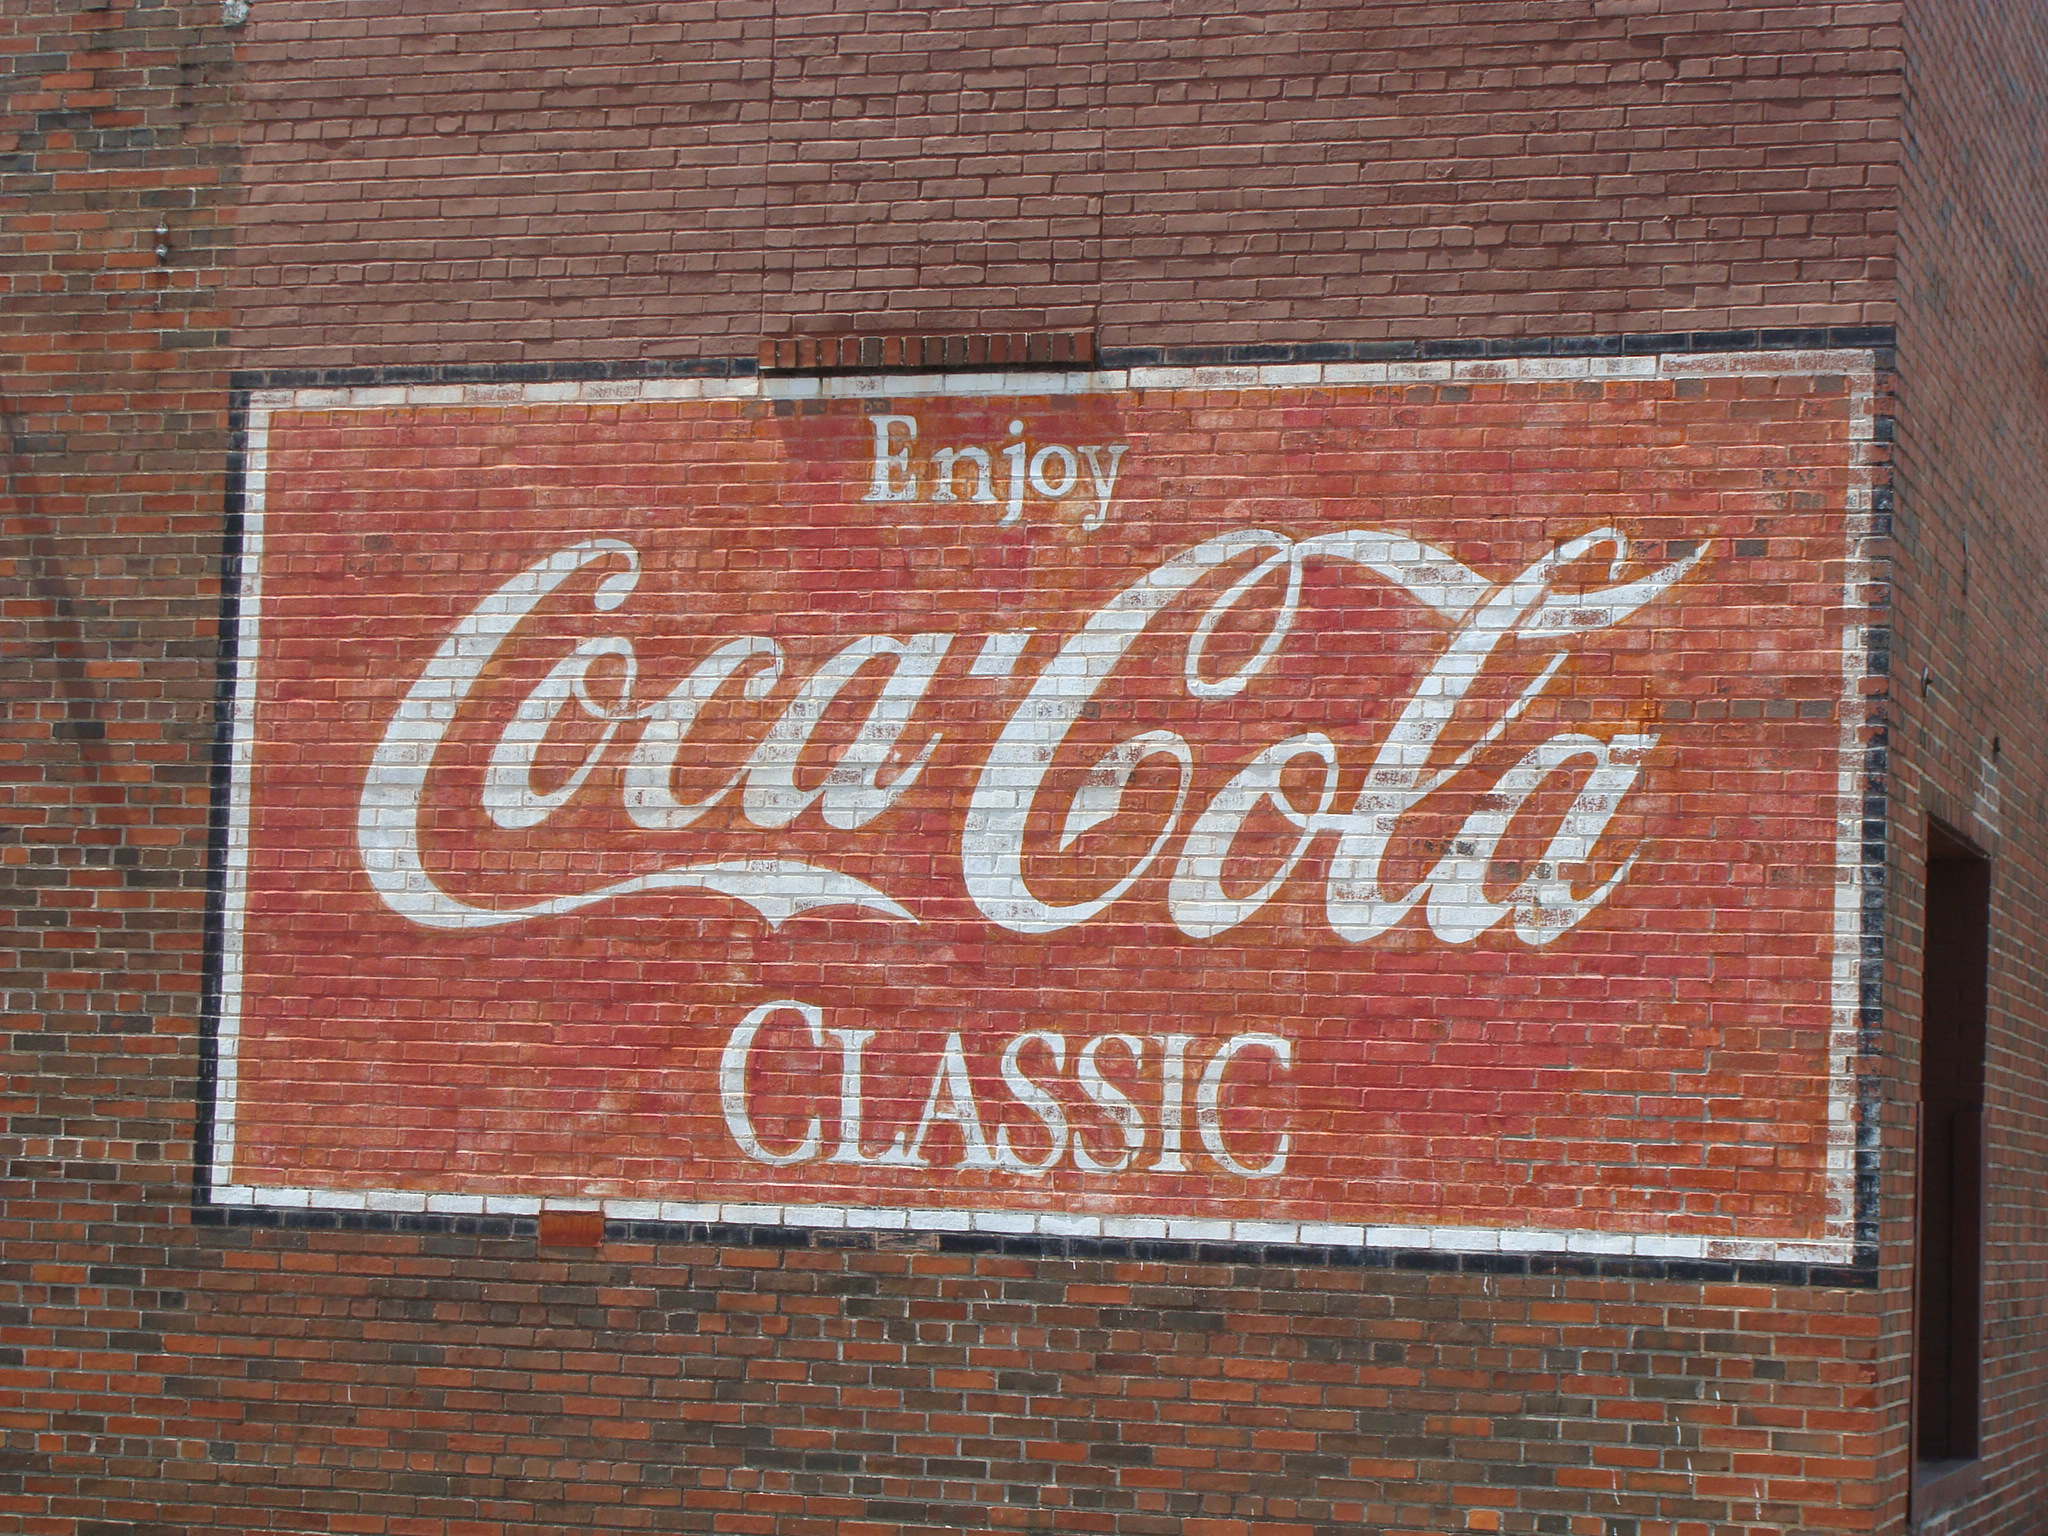 Coca-Cola-Classic-painted-brick-wall-mural-Google-Search-wallpaper-wp5603954